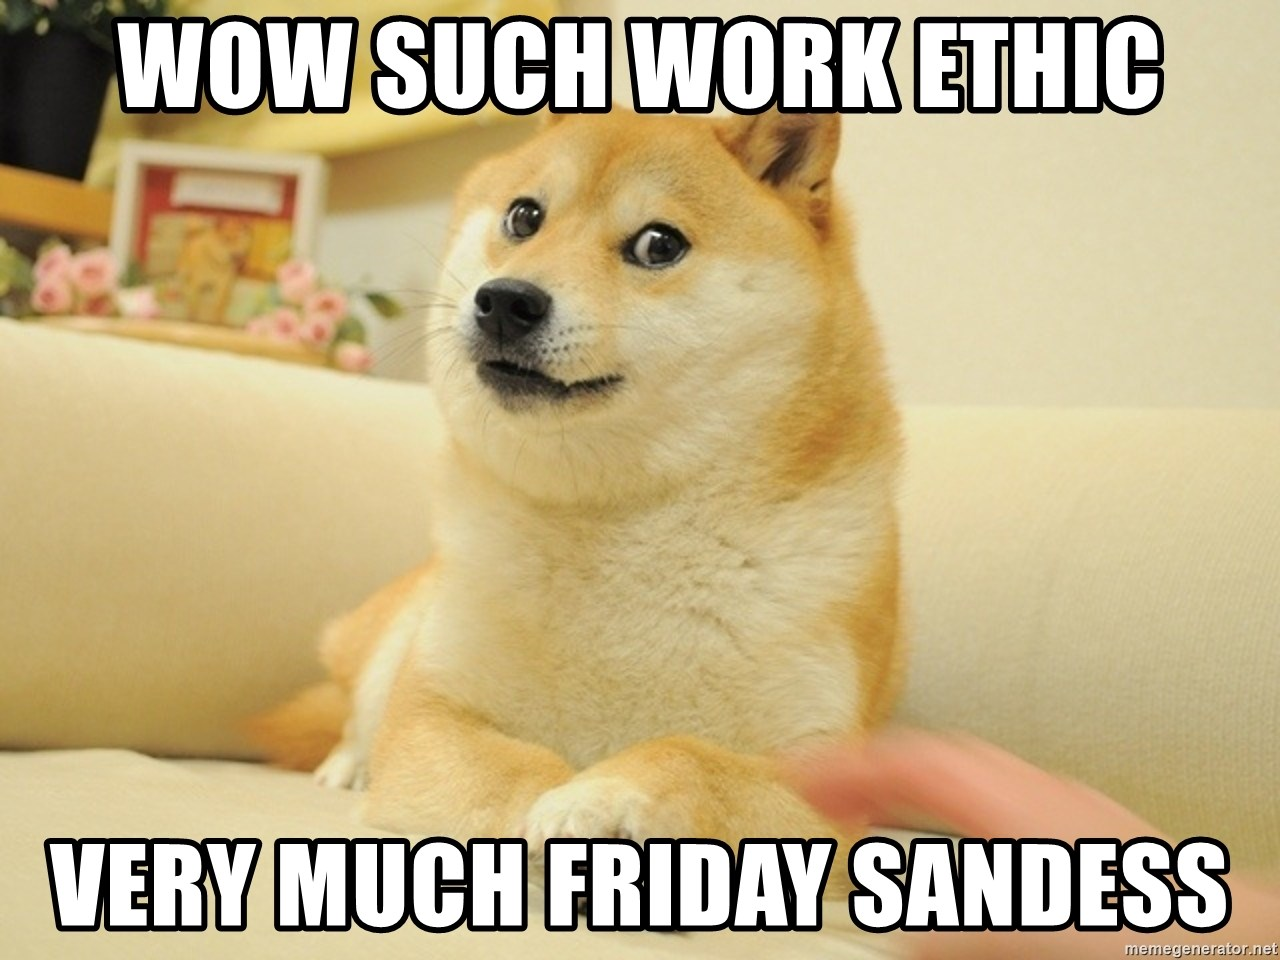 so doge - wow such work ethic very much friday sandess